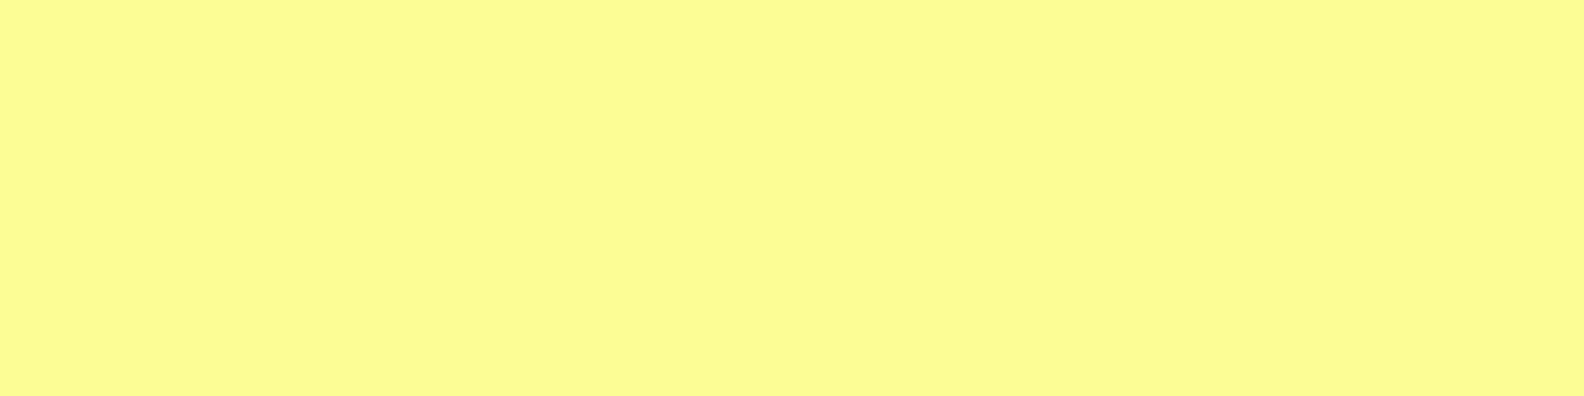 1584x396 Pastel Yellow Solid Color Background